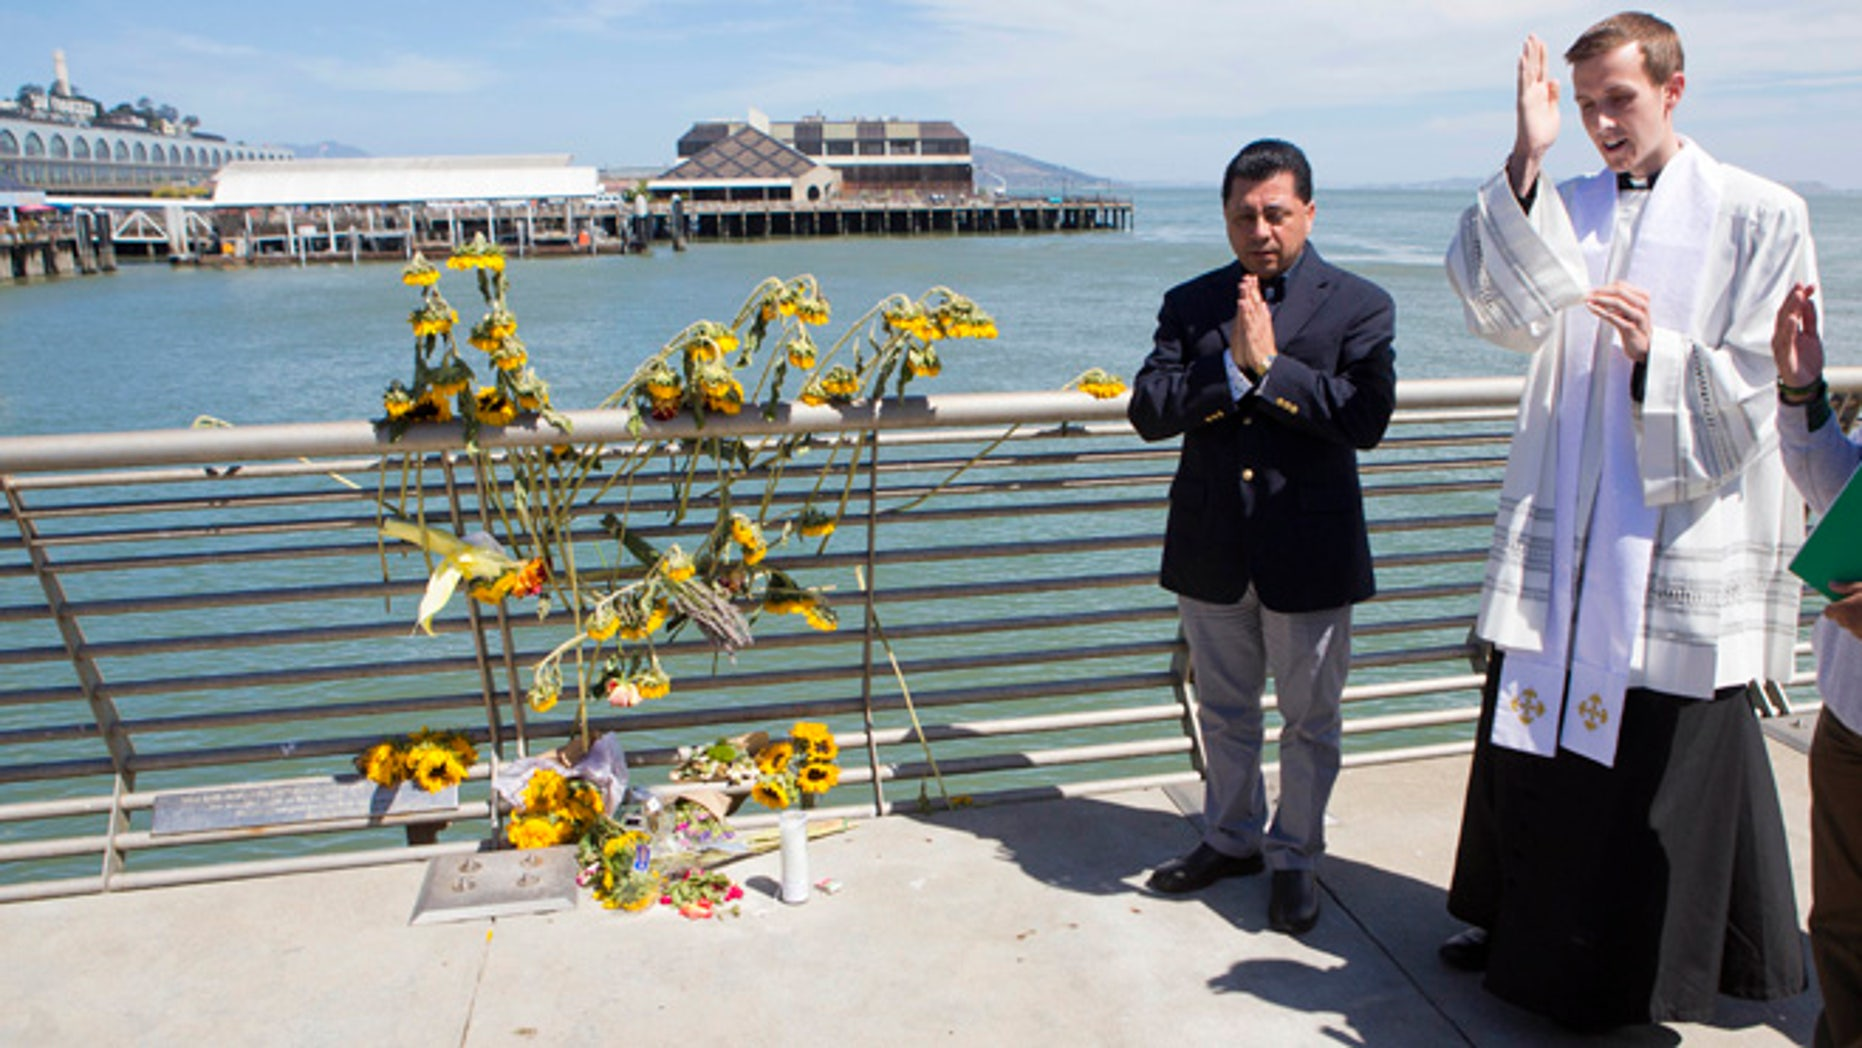 Father Cameron Faller and Julio Escobar conduct a vigil for Kathryn Steinle on Pier 14 in San Francisco, July 6, 2015.